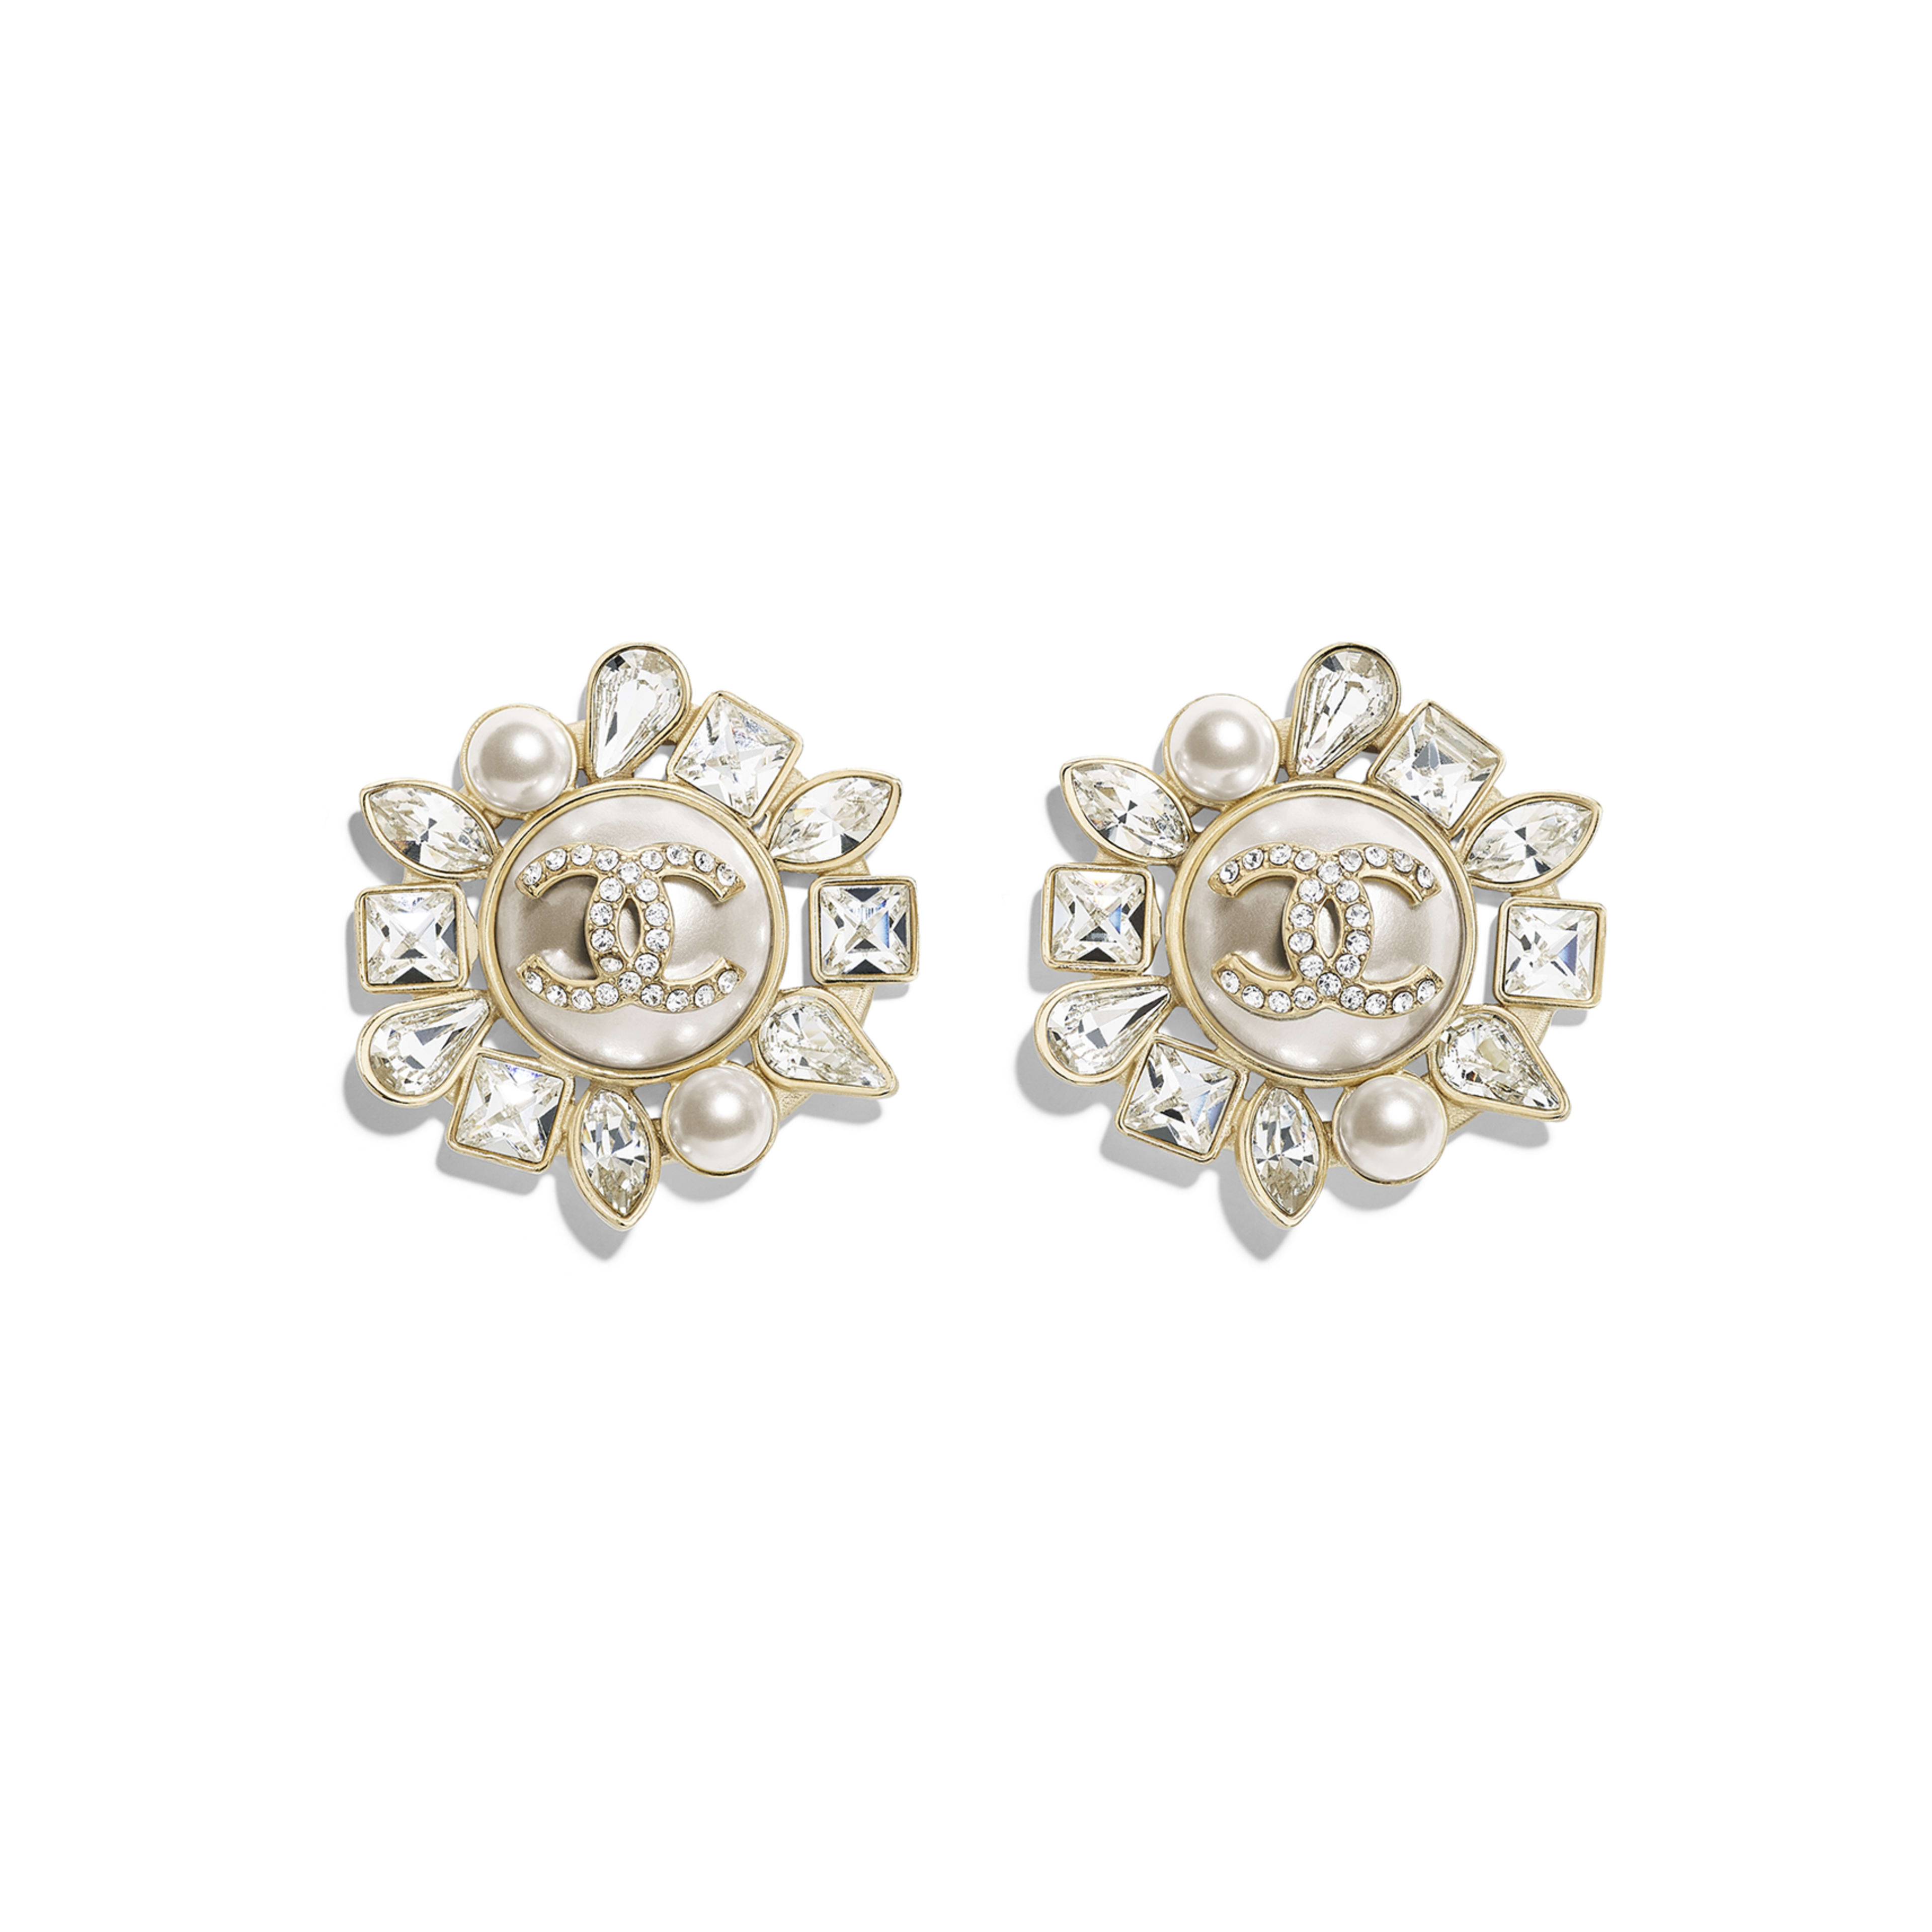 Earrings - Gold, Pearly White & Crystal - Metal, Glass Pearls, Strass & Resin - Default view - see full sized version